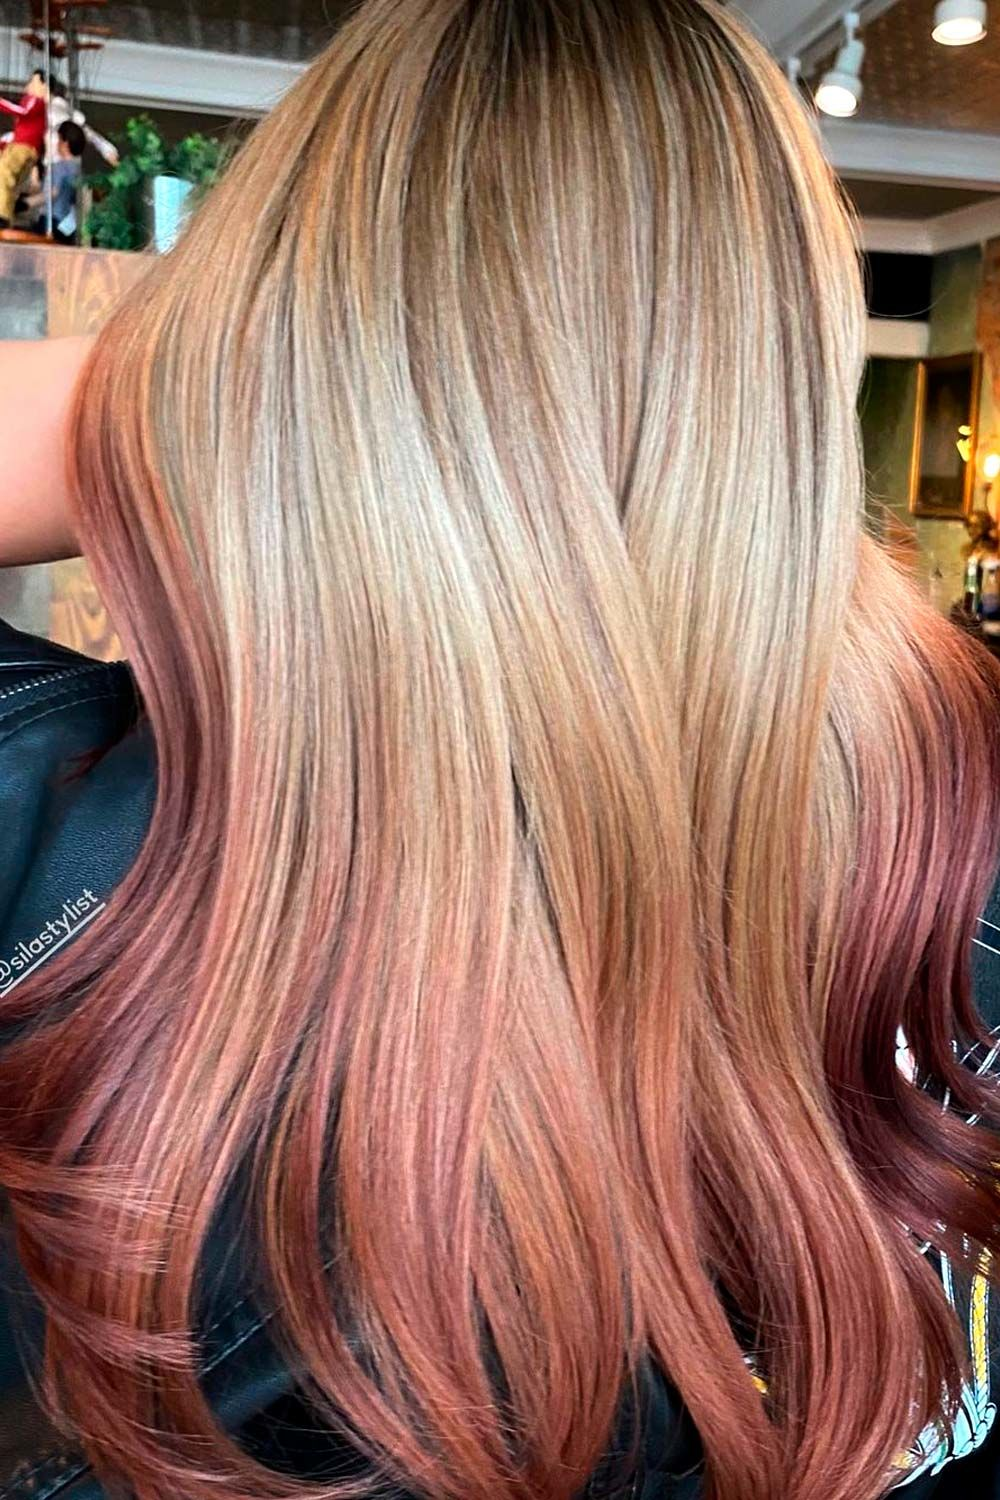 Strawberry Blonde Reverse Ombre, reverse ombre hair blonde to brown, reverse ombre brown hair, reverse ombre blonde to brown